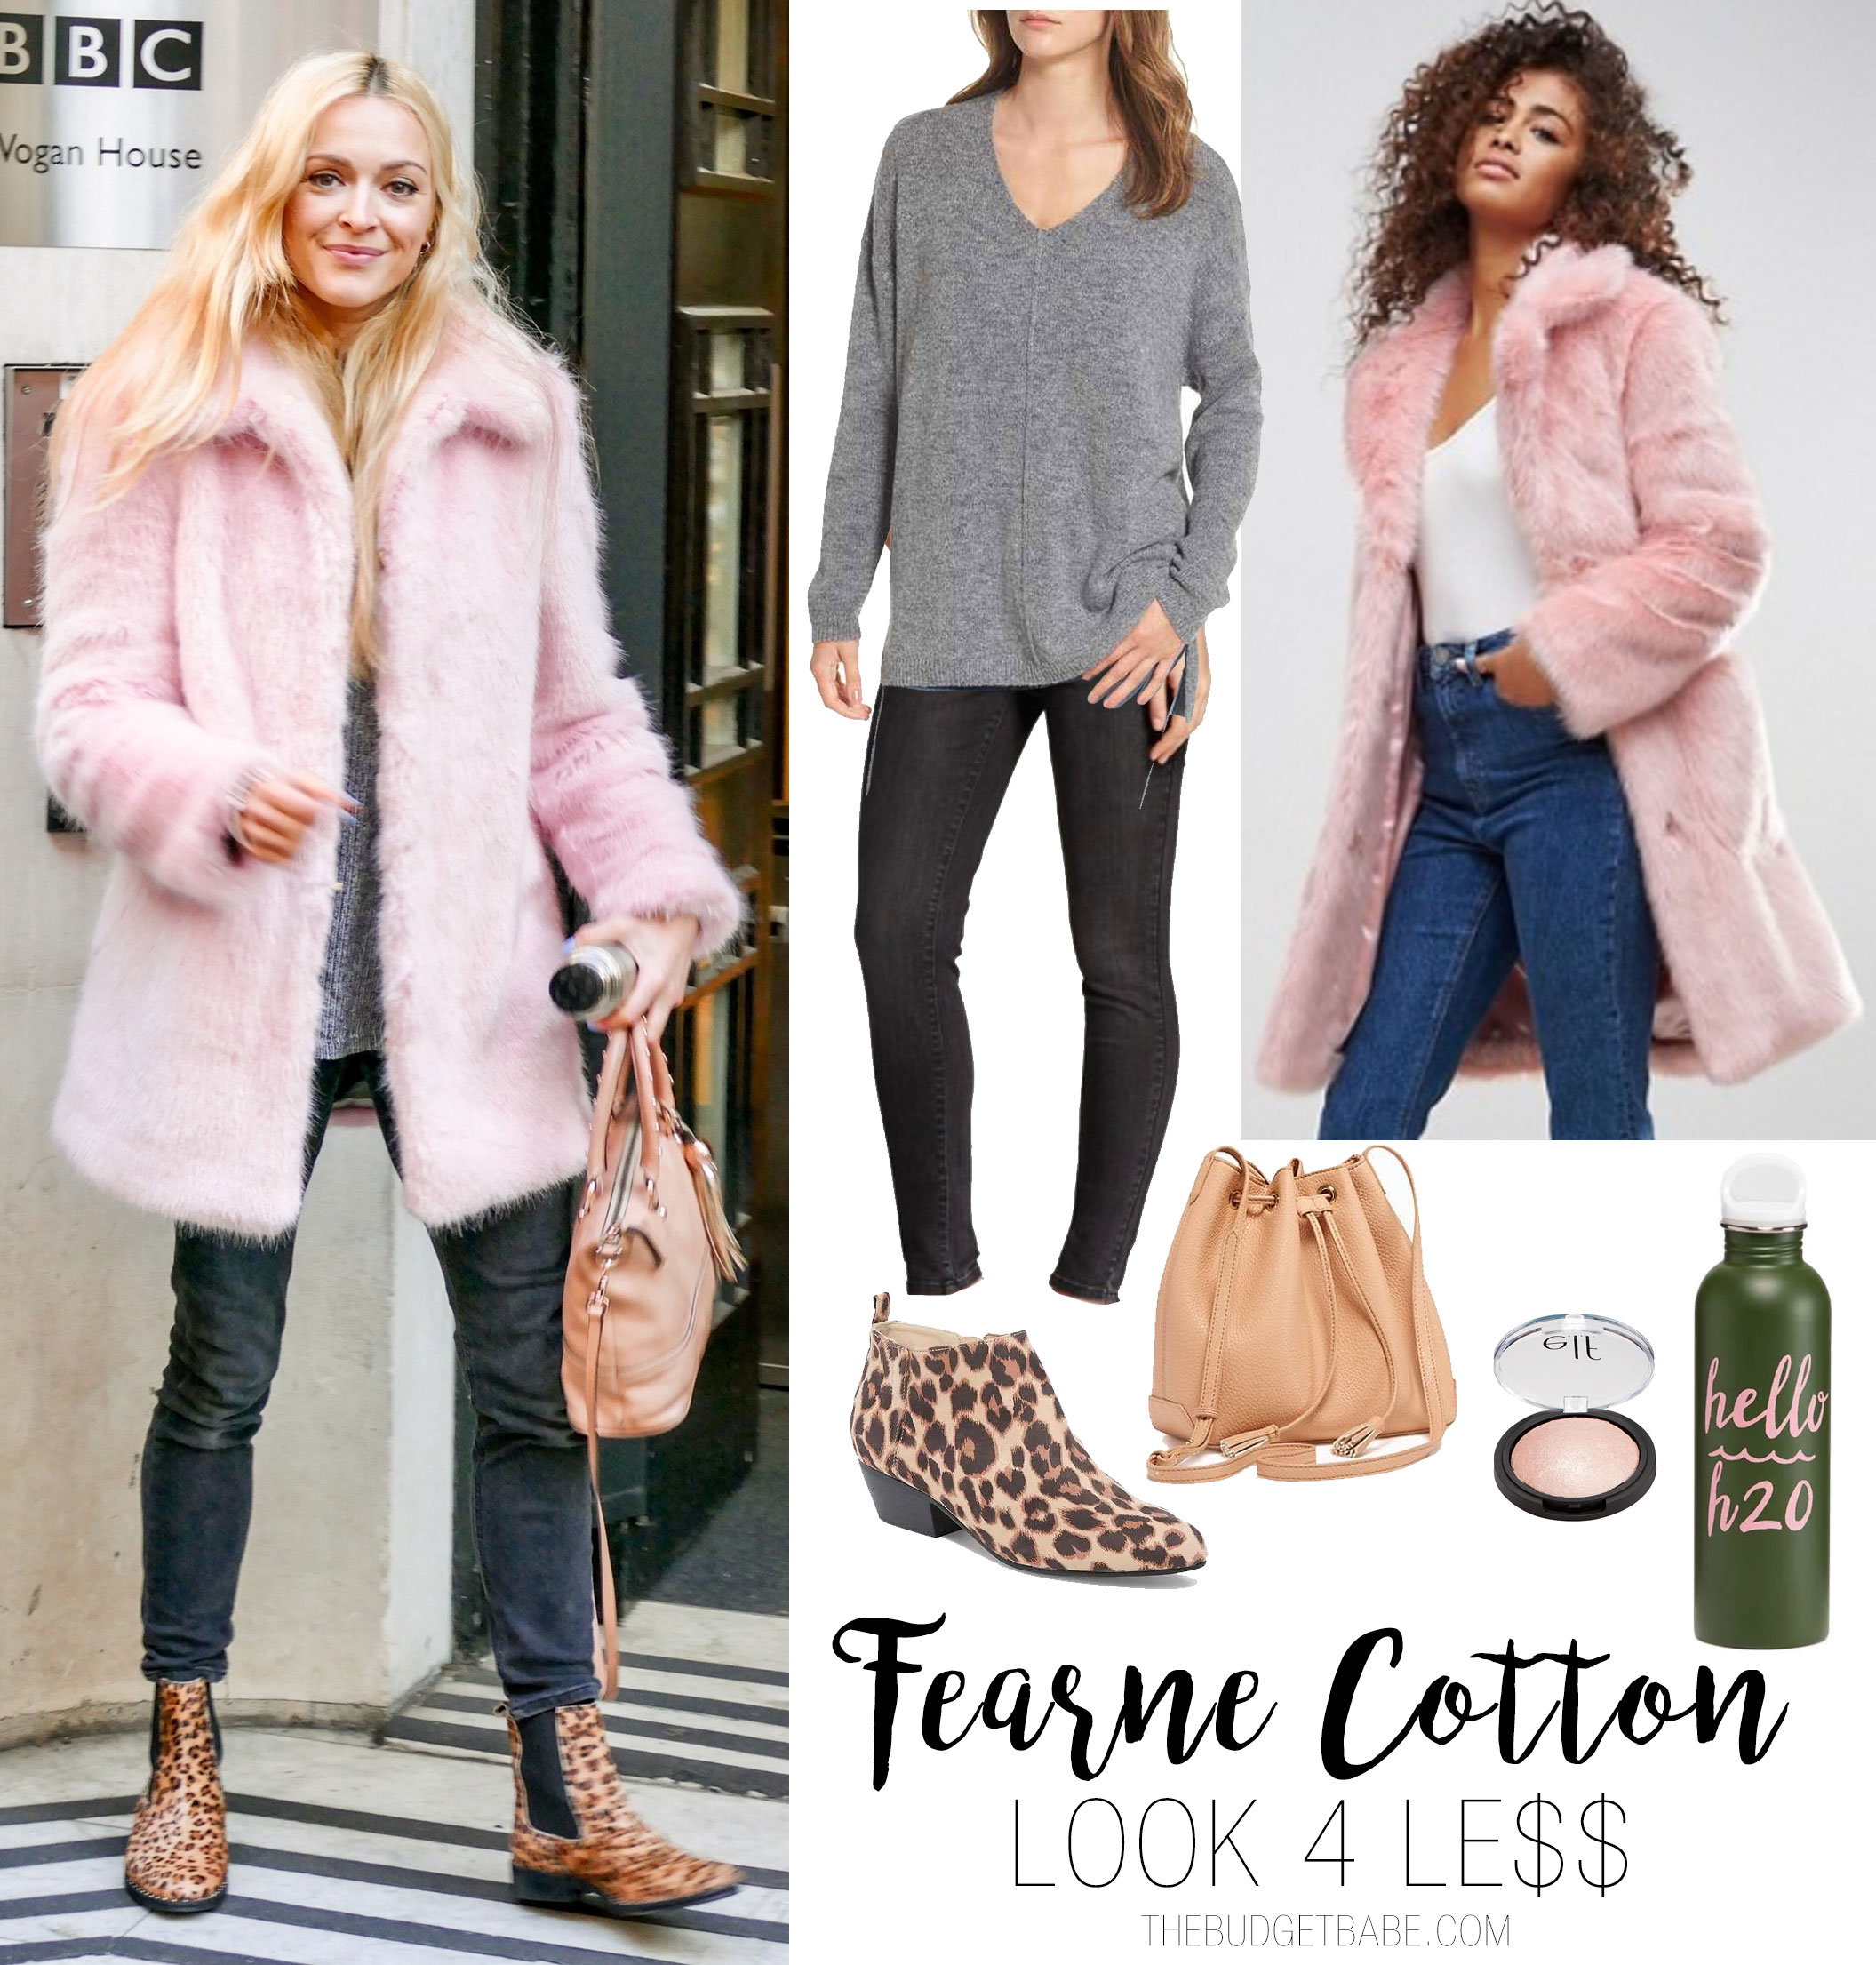 Fearne Cotton's pink faux fur coat and leopard booties celebrity look for less